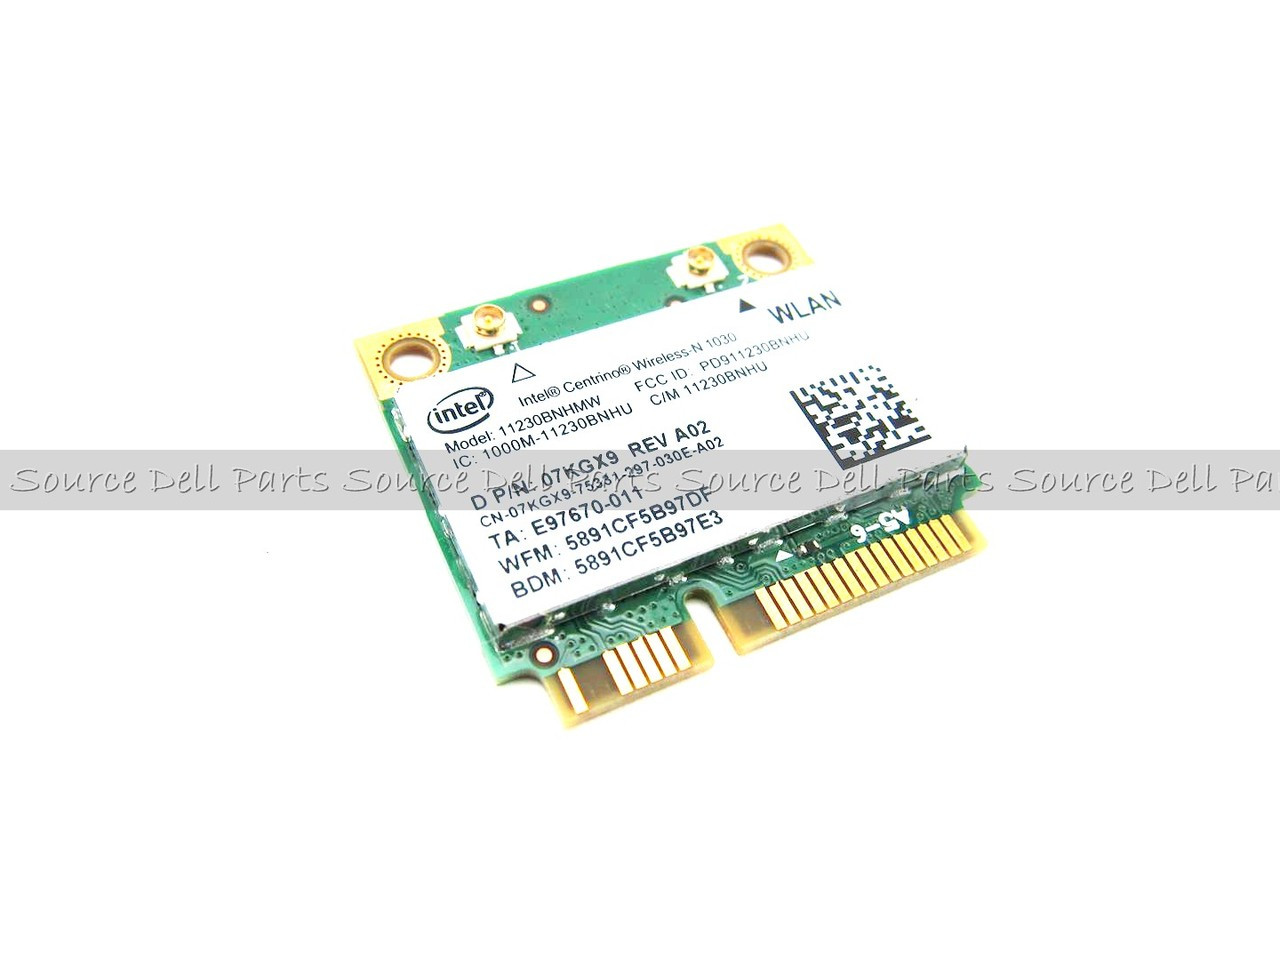 Dell Intel Centrino 1030 Wireless WiFi 802.11 b/g/n Half-Height Card Mini-PCI Express - 7KGX9